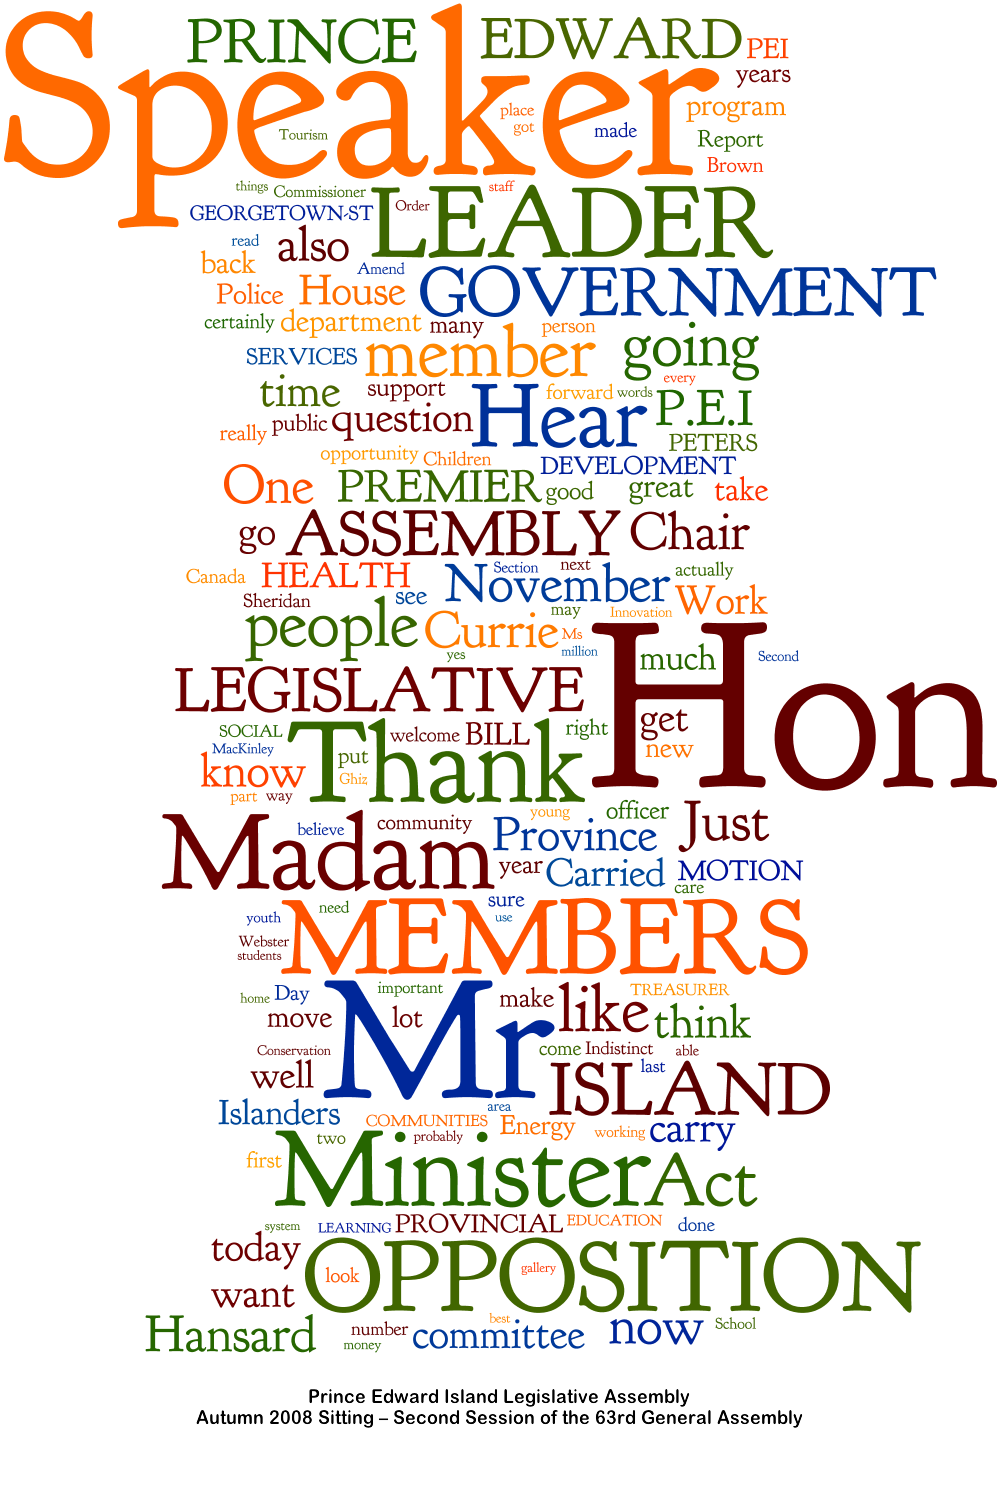 The Autumn 2008 Sitting of the Prince Edward Island Legislative Assembly in a Wordle